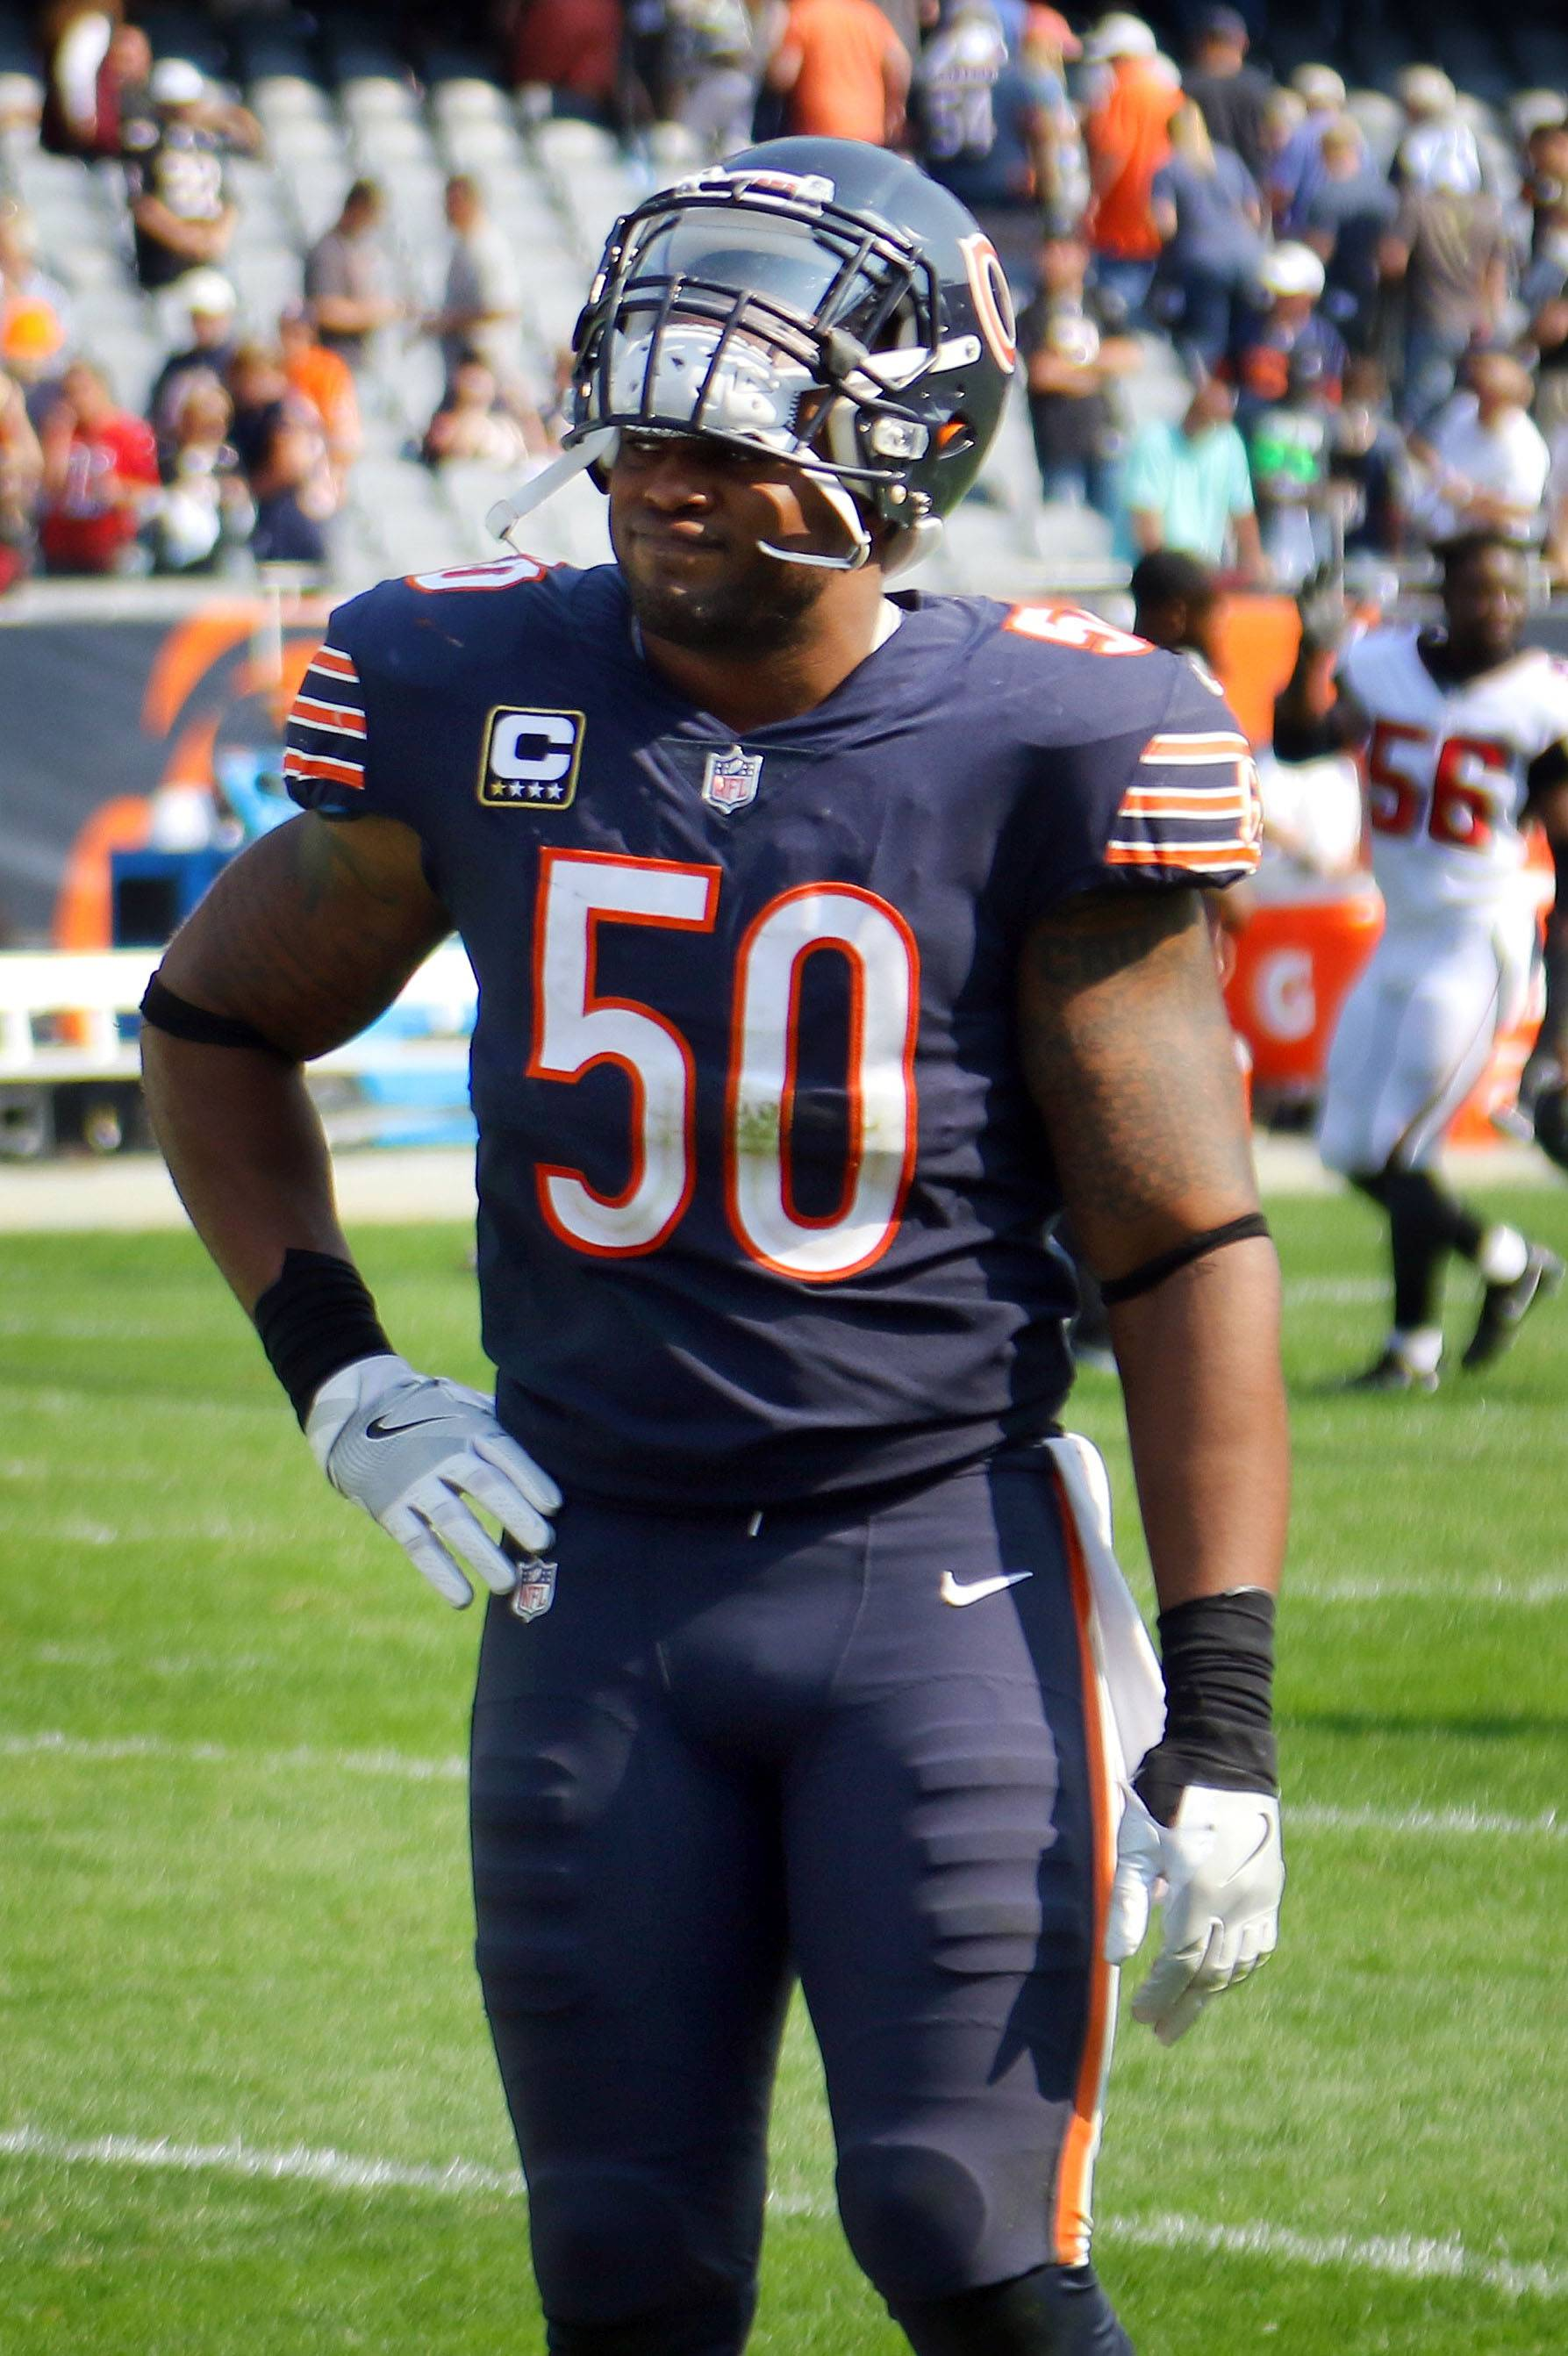 Steve Lundy/slundy@dailyherald.comChicago Bears inside linebacker Jerrell Freeman walks off the field after losing to the Atlanta Falcons 23-17 Sunday, September 10, 2017 at Soldier Field on Chicago.